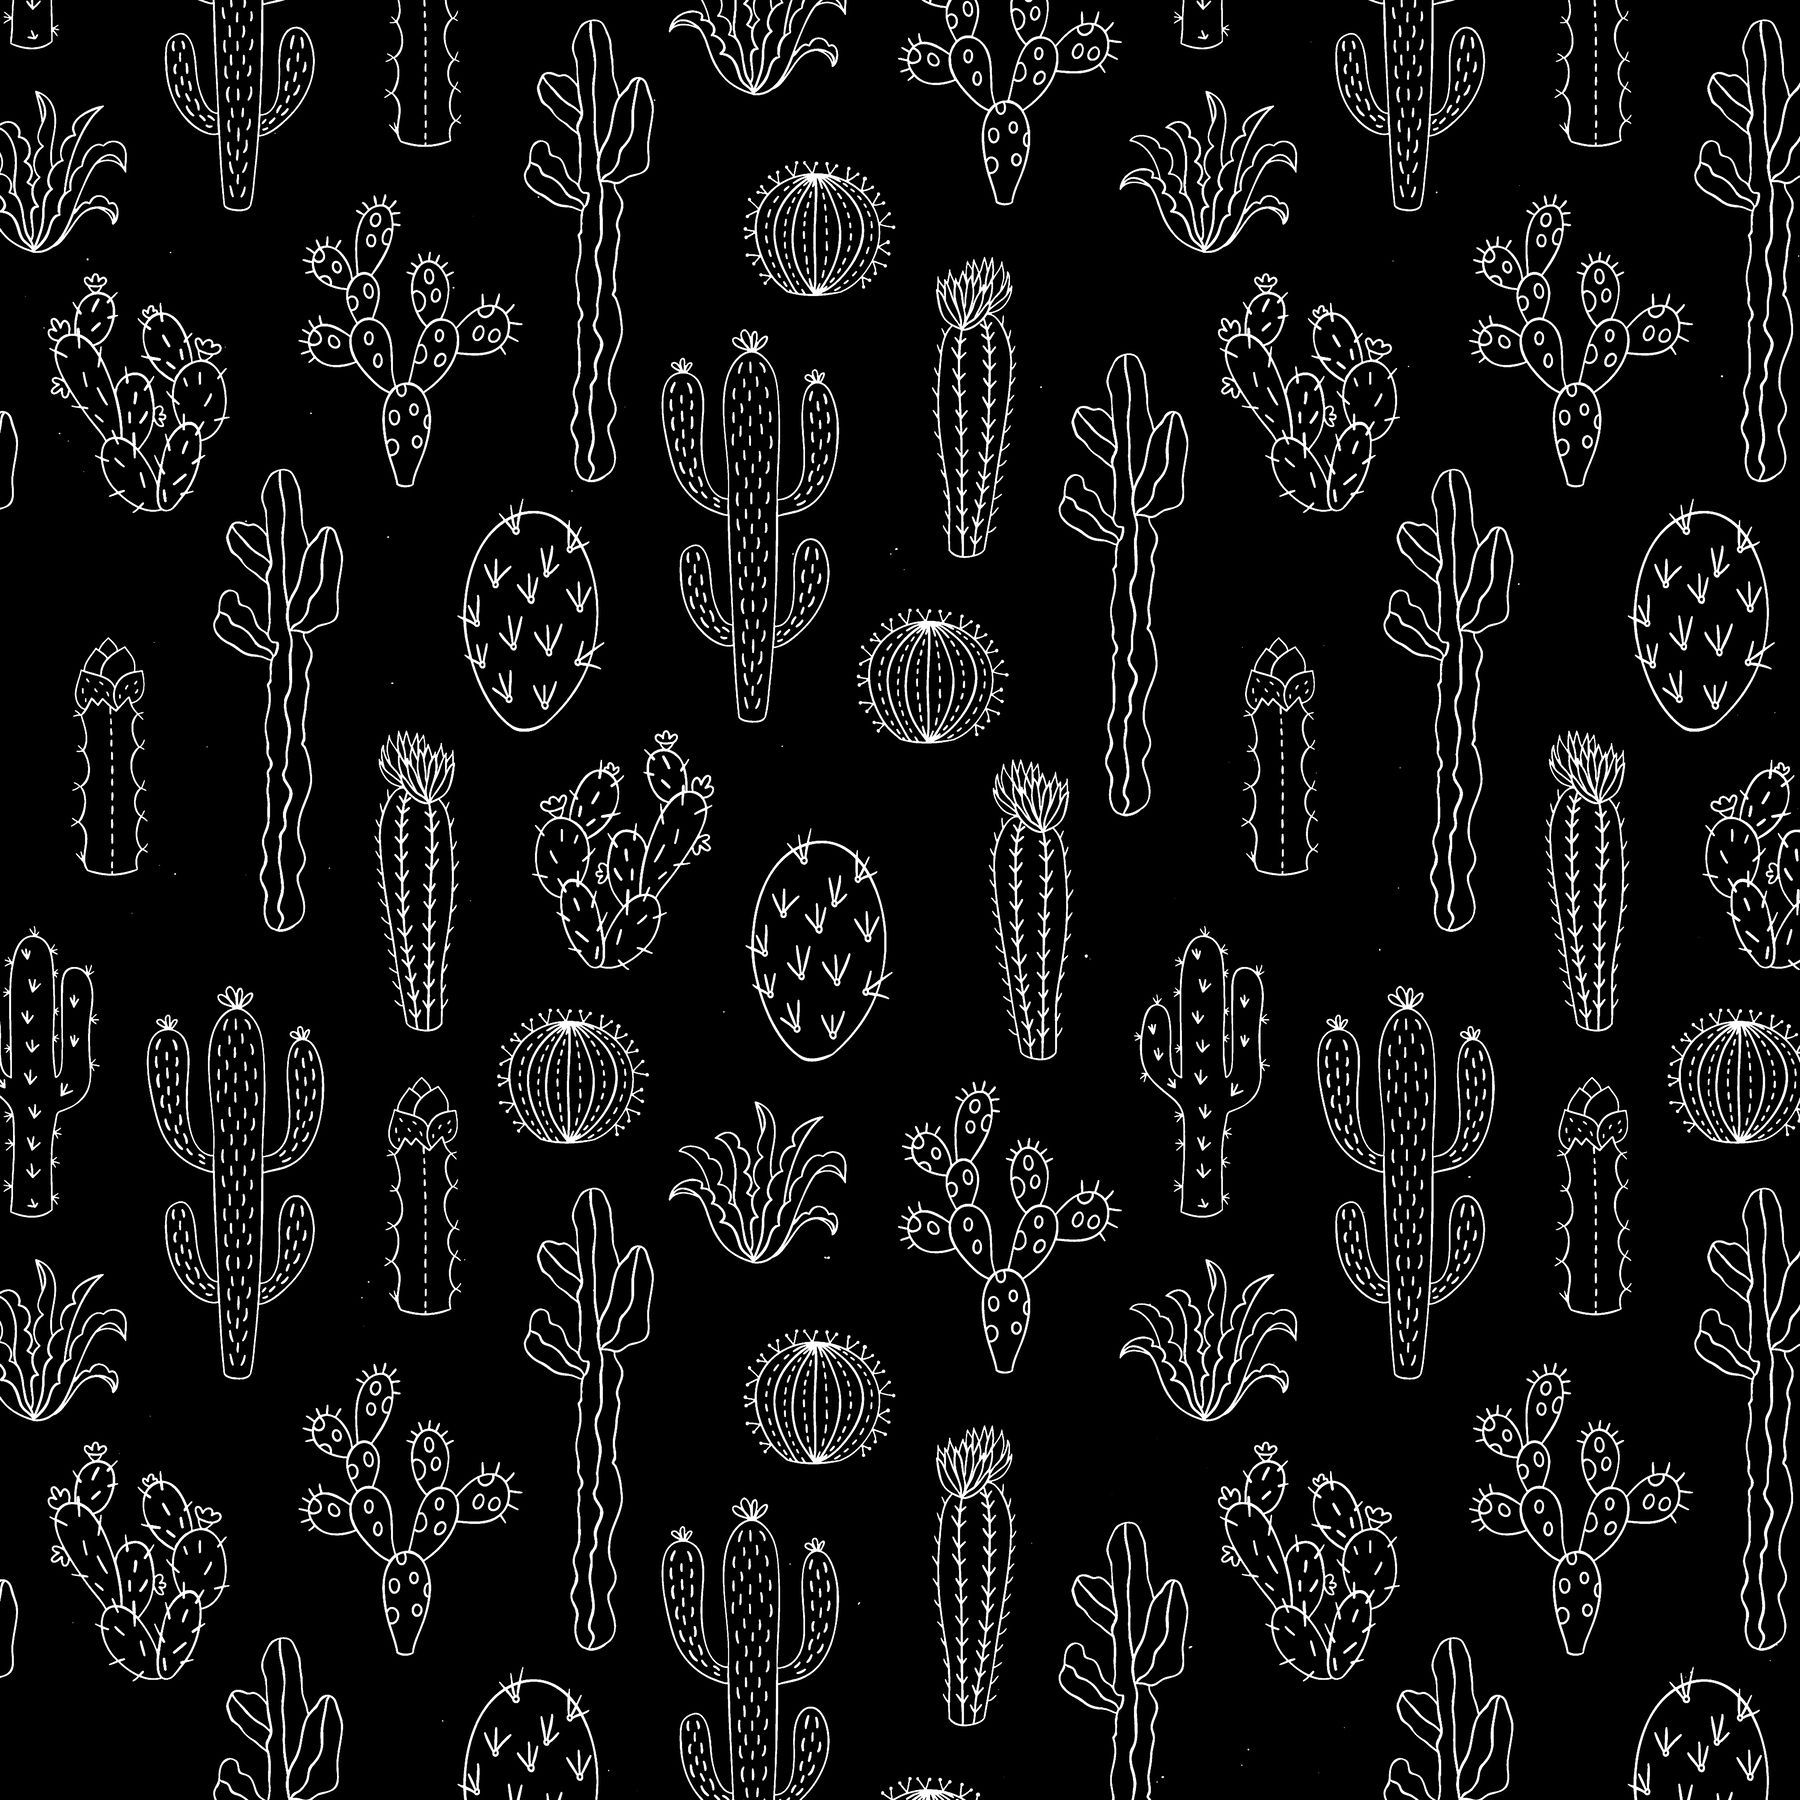 1800x1800 Cactus Silhouette Wall mural | Backgrounds in 2019 | Cactus ...